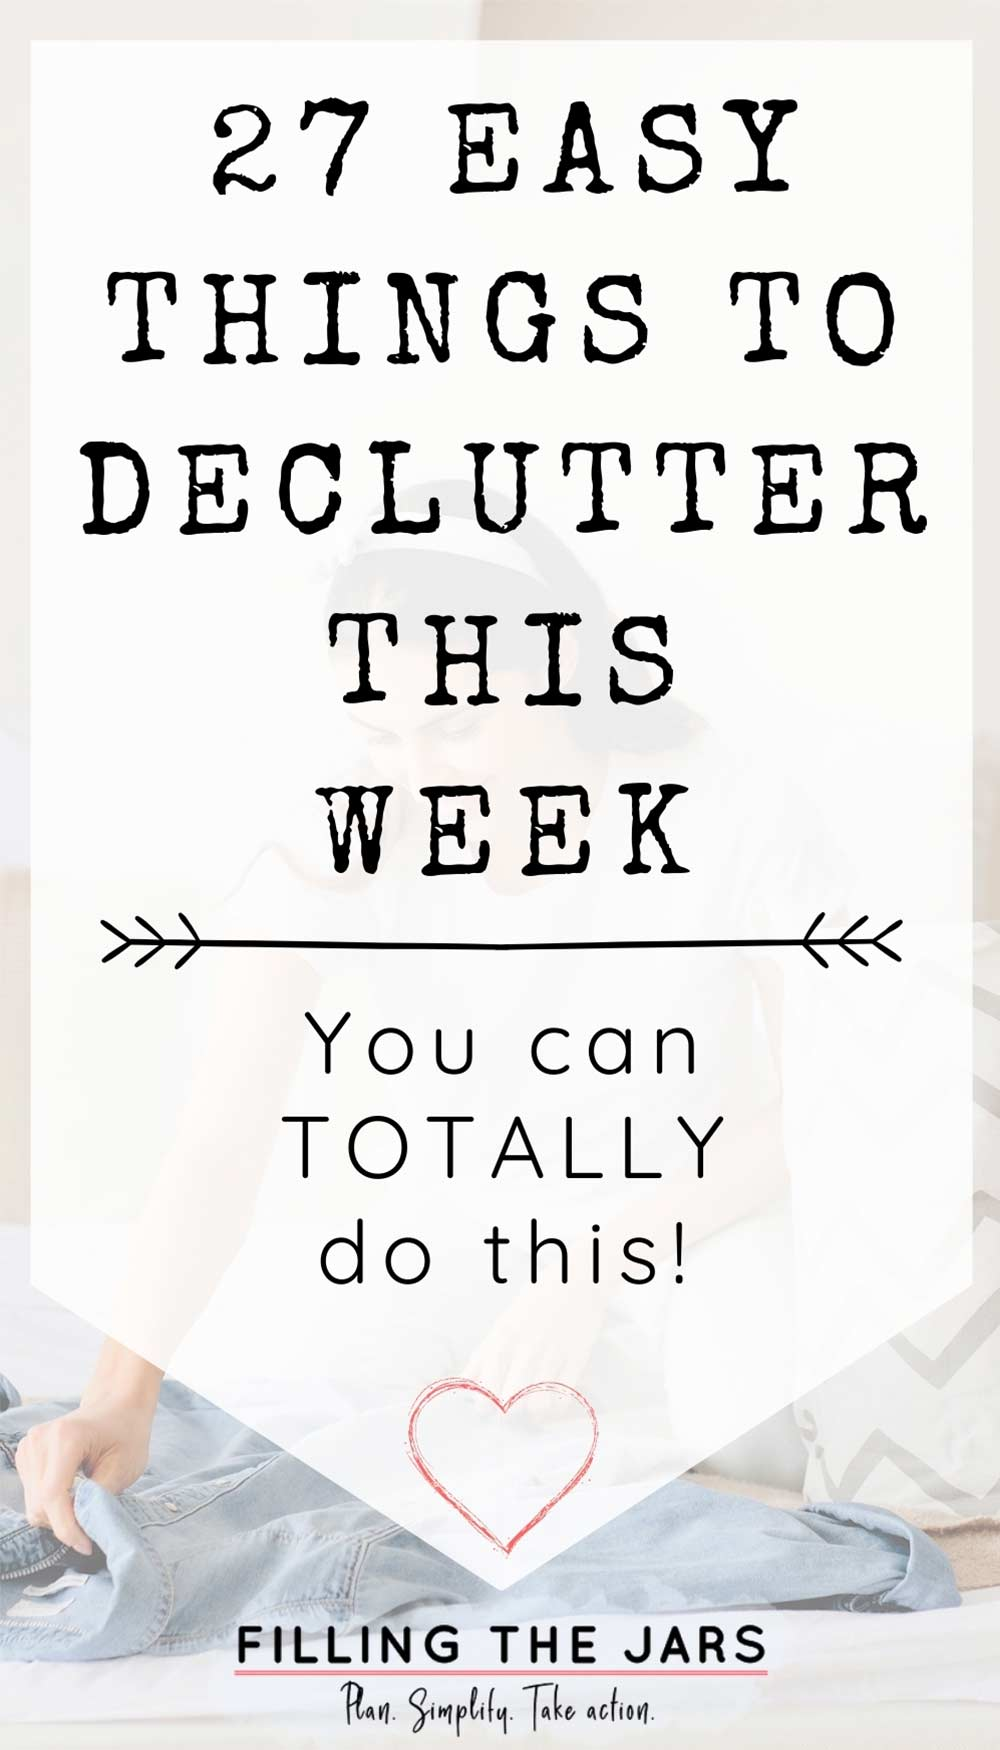 Text easy things to declutter on white background over image of woman sitting on bed decluttering items and preparing donation bag.